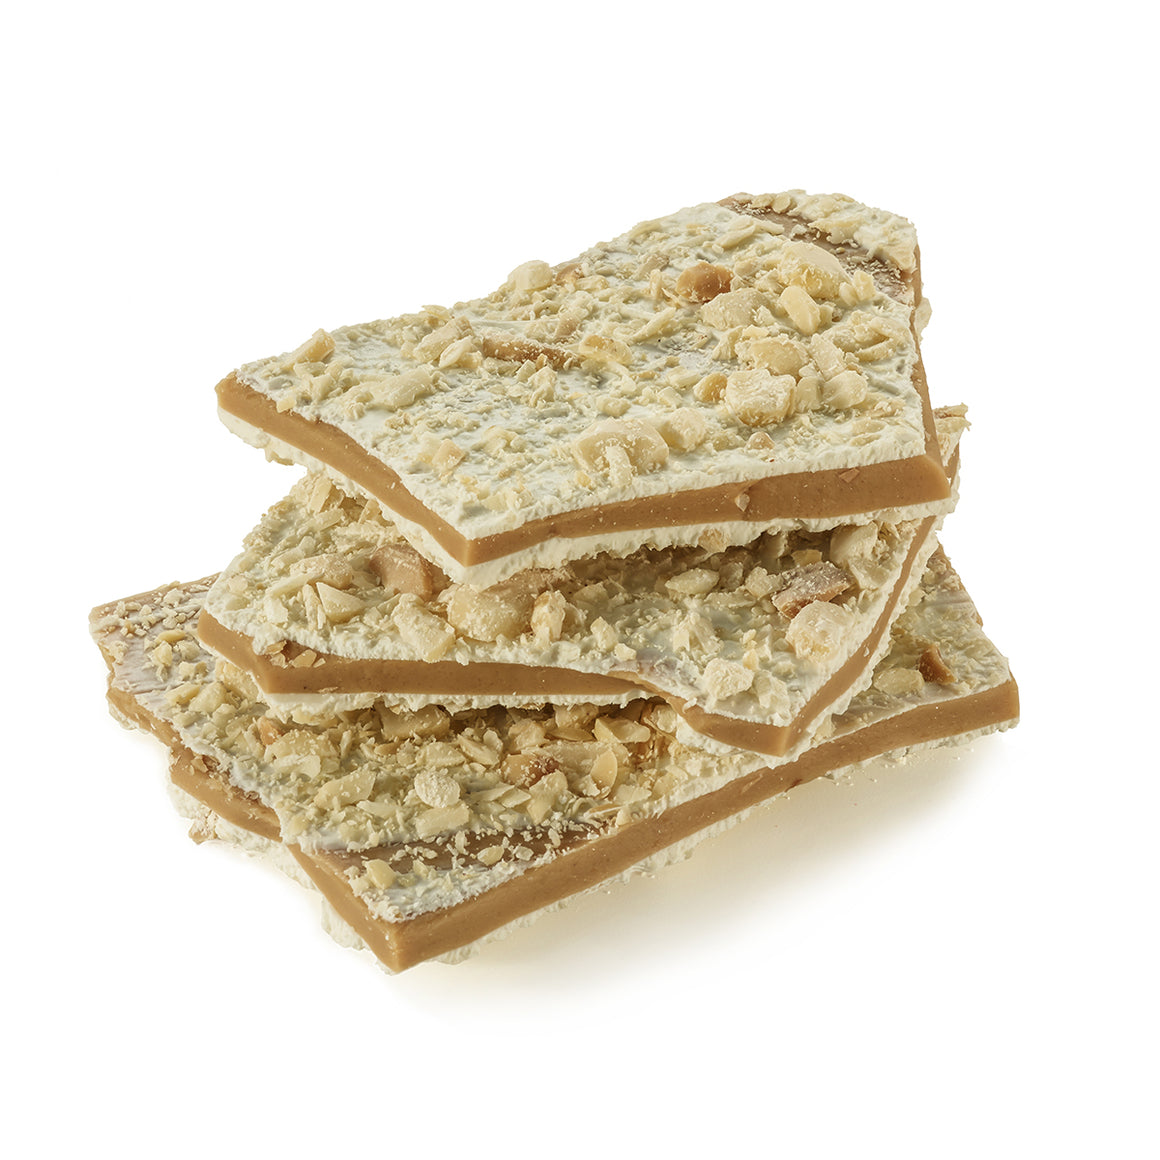 White Chocolate Macadamia Nut Toffee